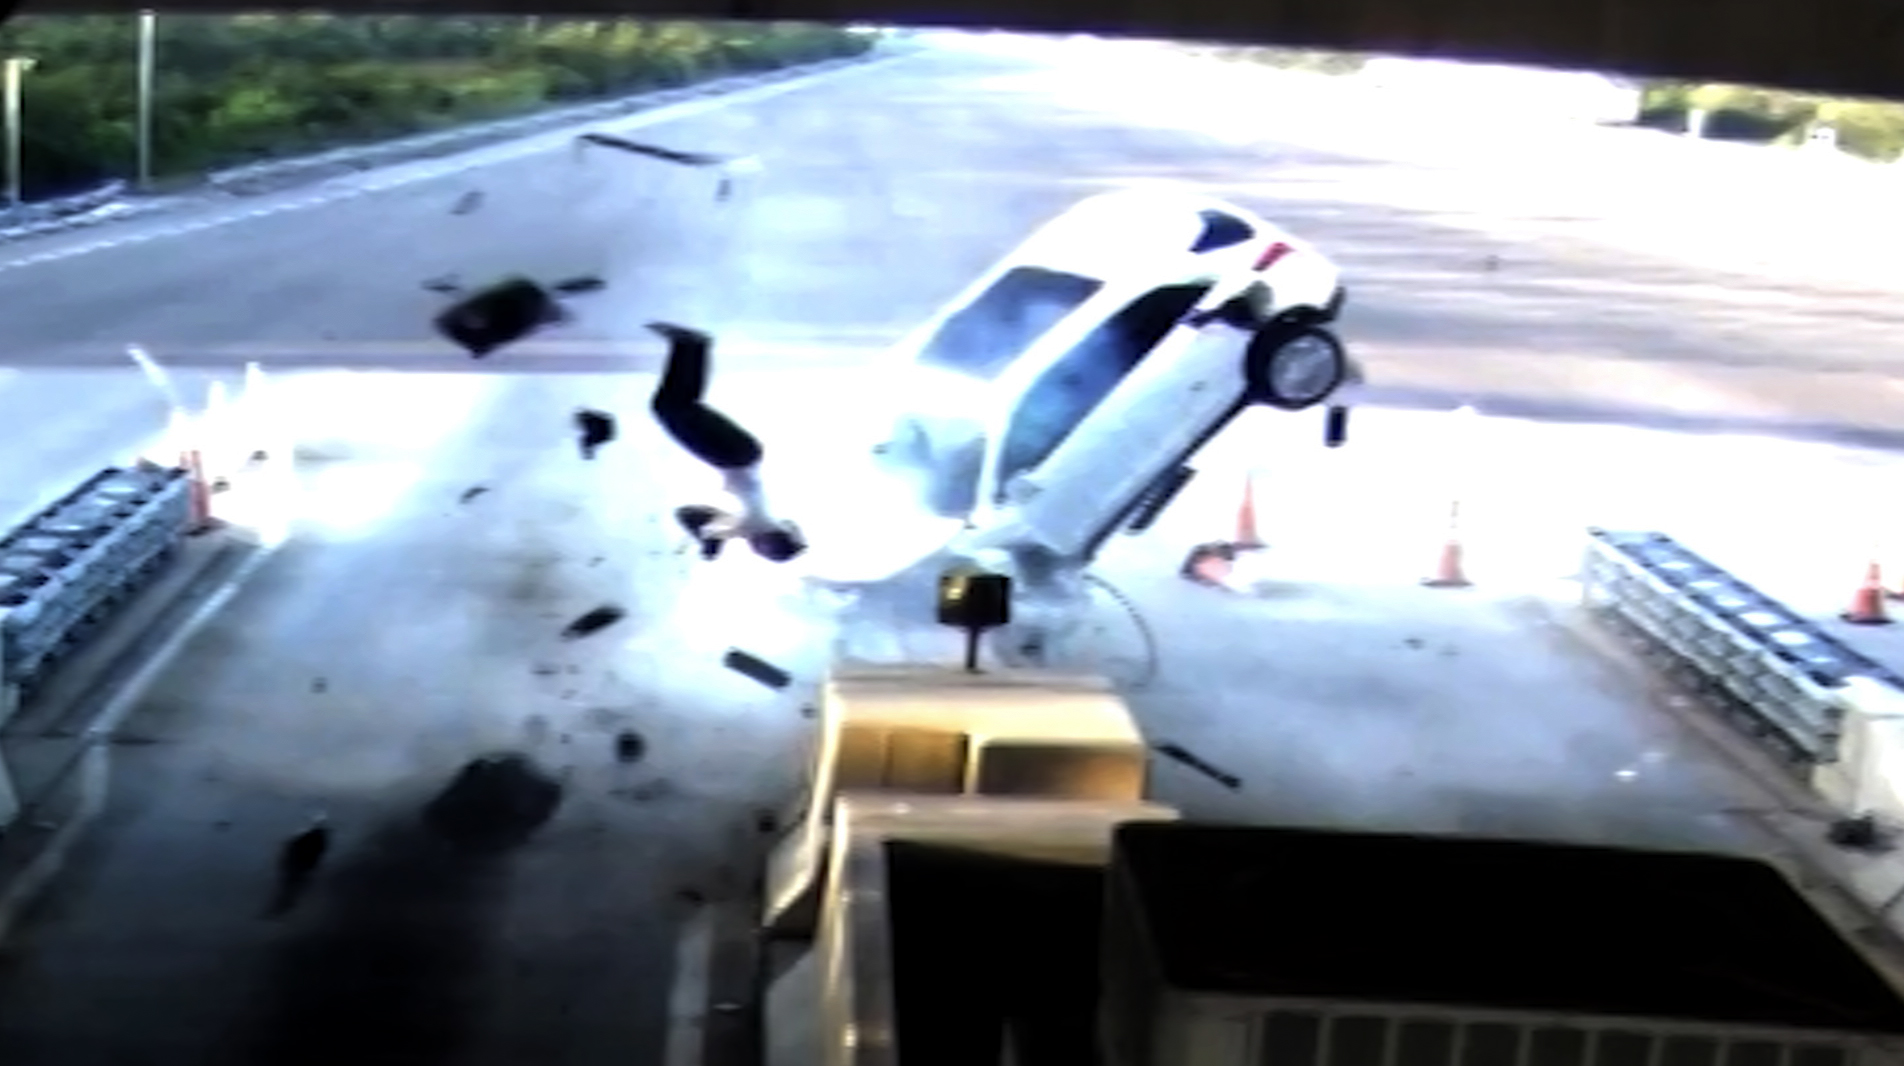 Man ejected as car slams into toll booth - CNN Video